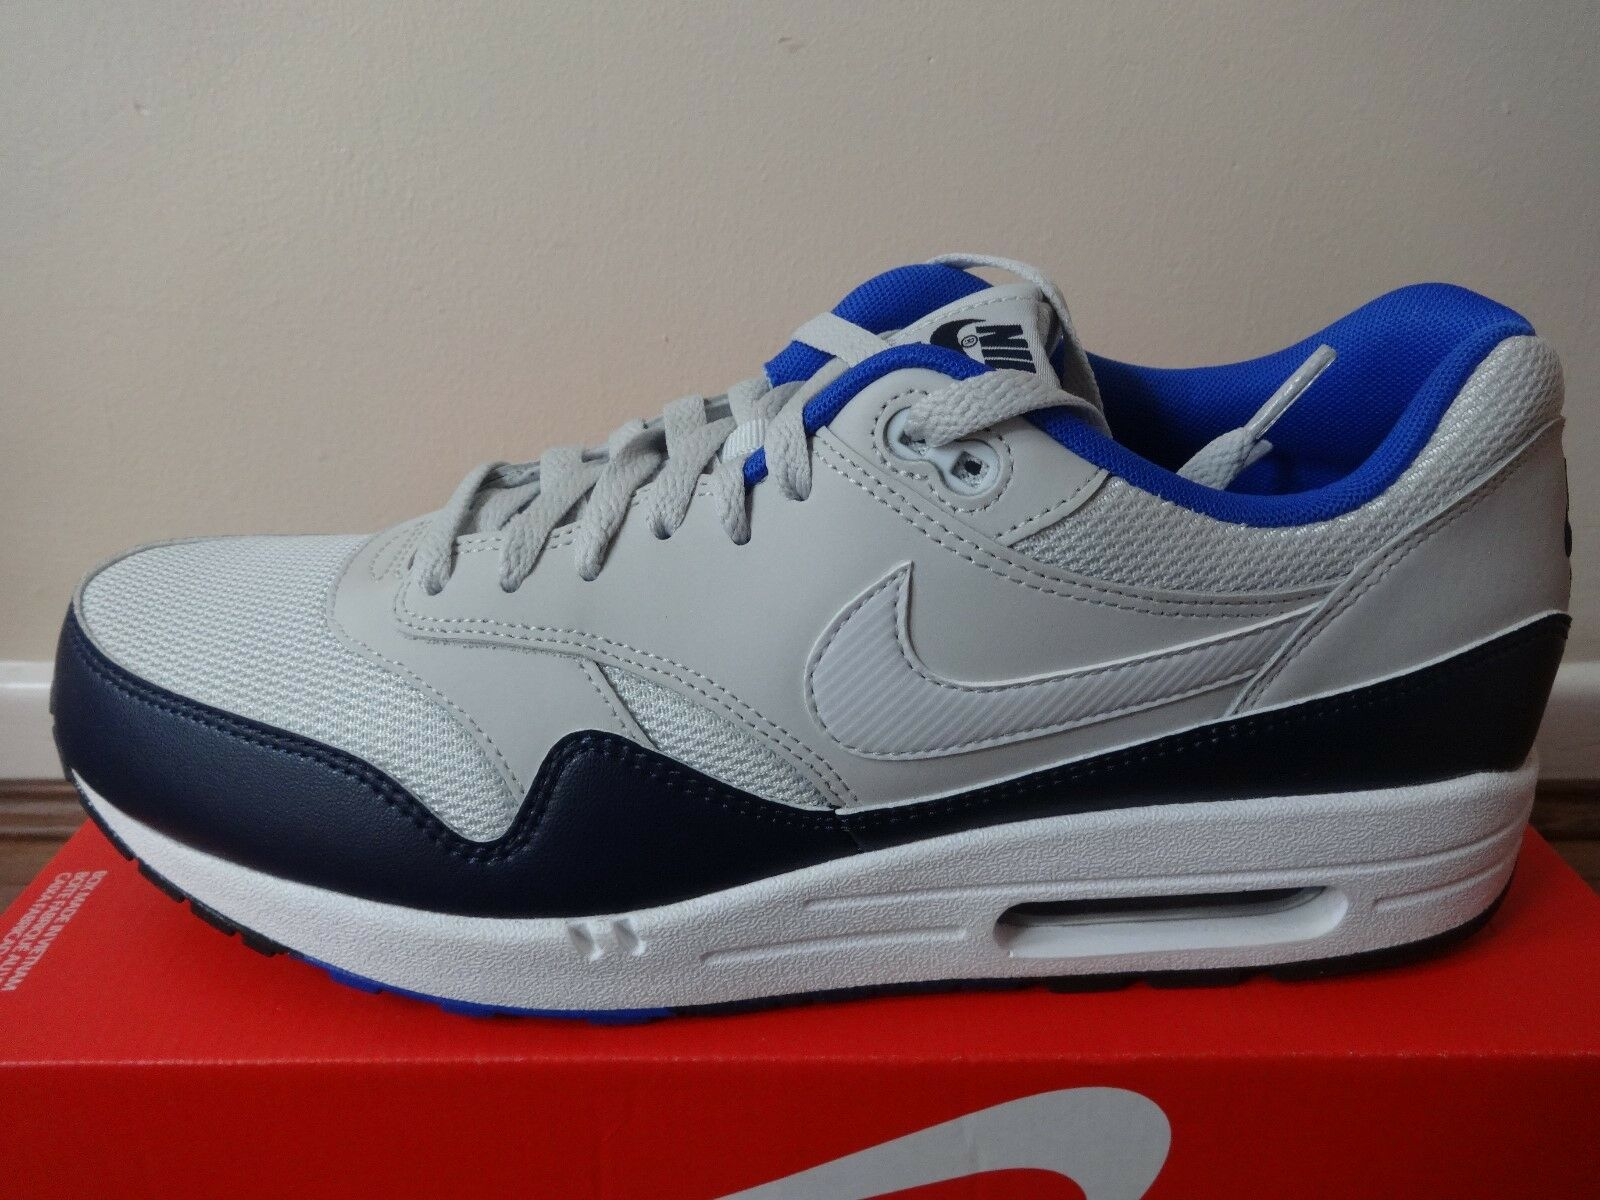 Nike homme air max 1 essential homme Nike trainers Baskets chaussures 537383 023 NEWBOX 2ac6a5